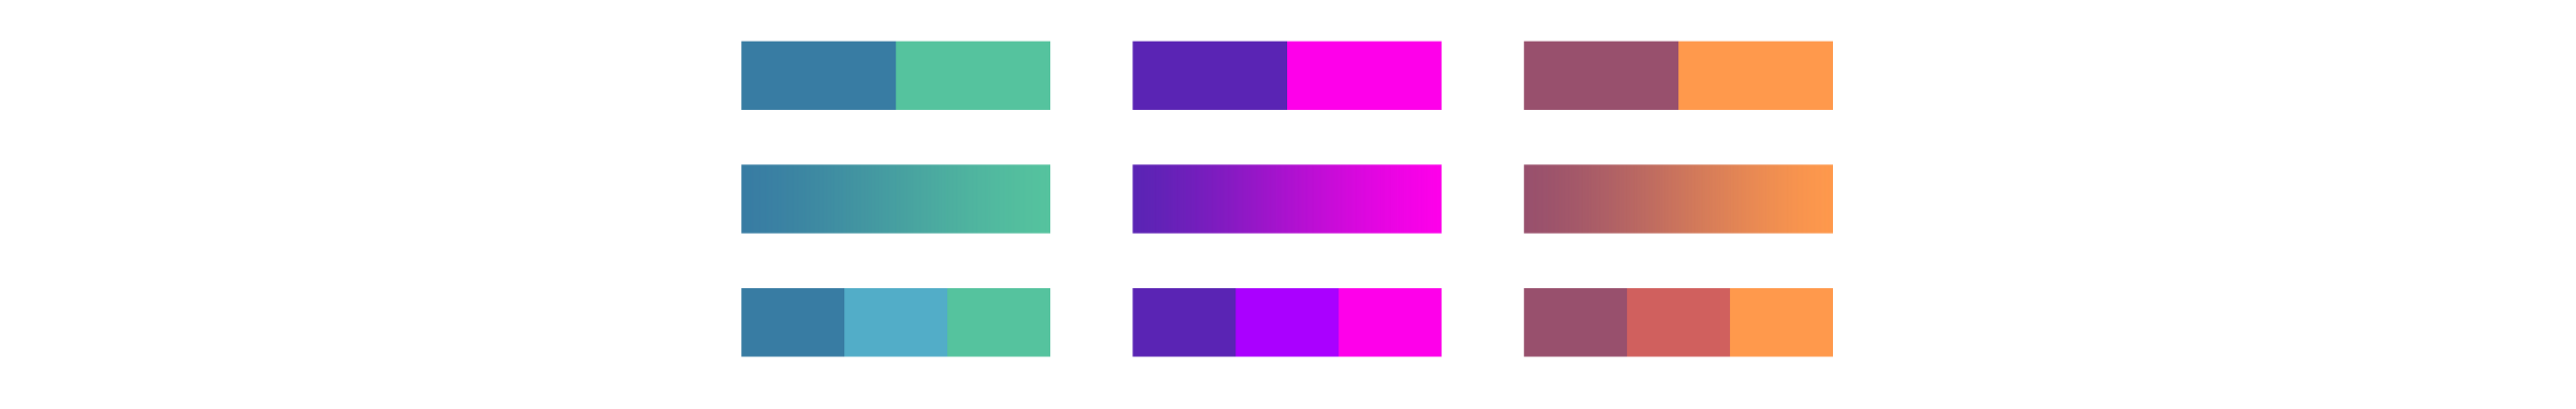 Best Three Color Scheme For Ui Design Design Code And Prototyping